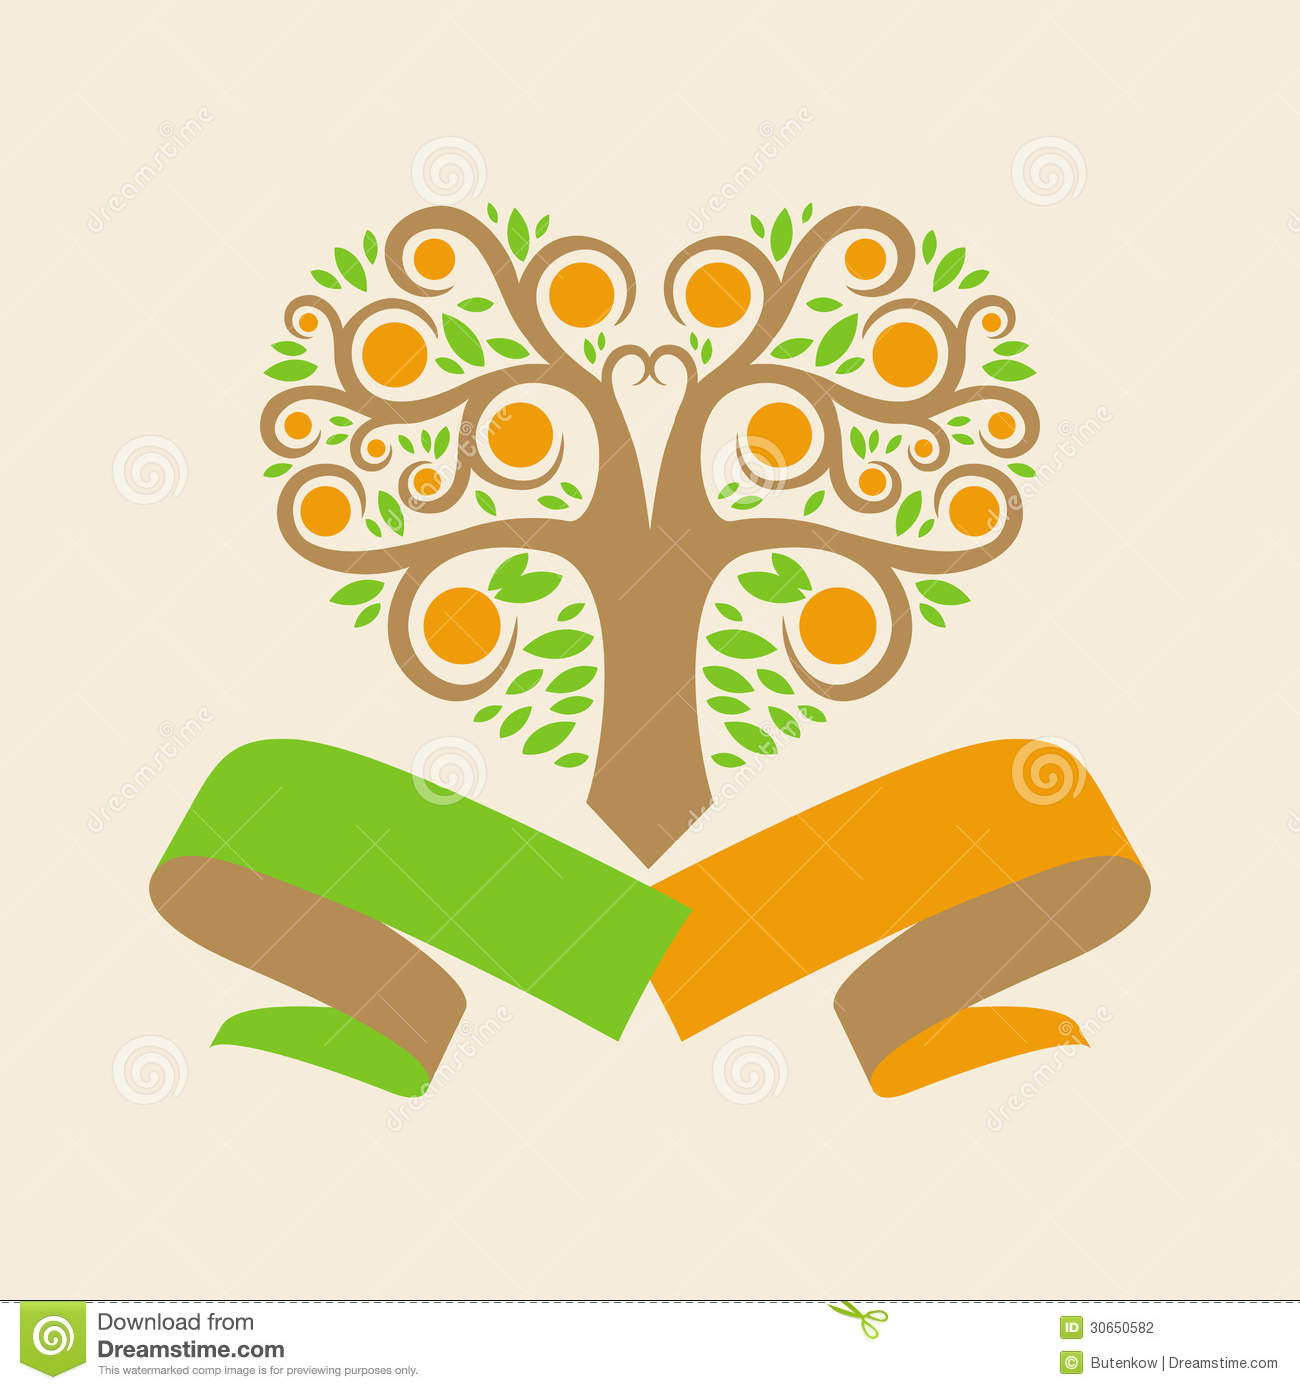 Wedding Logo With An Orange Tree In The Form Of He Stock ...  Wedding Logo Wi...